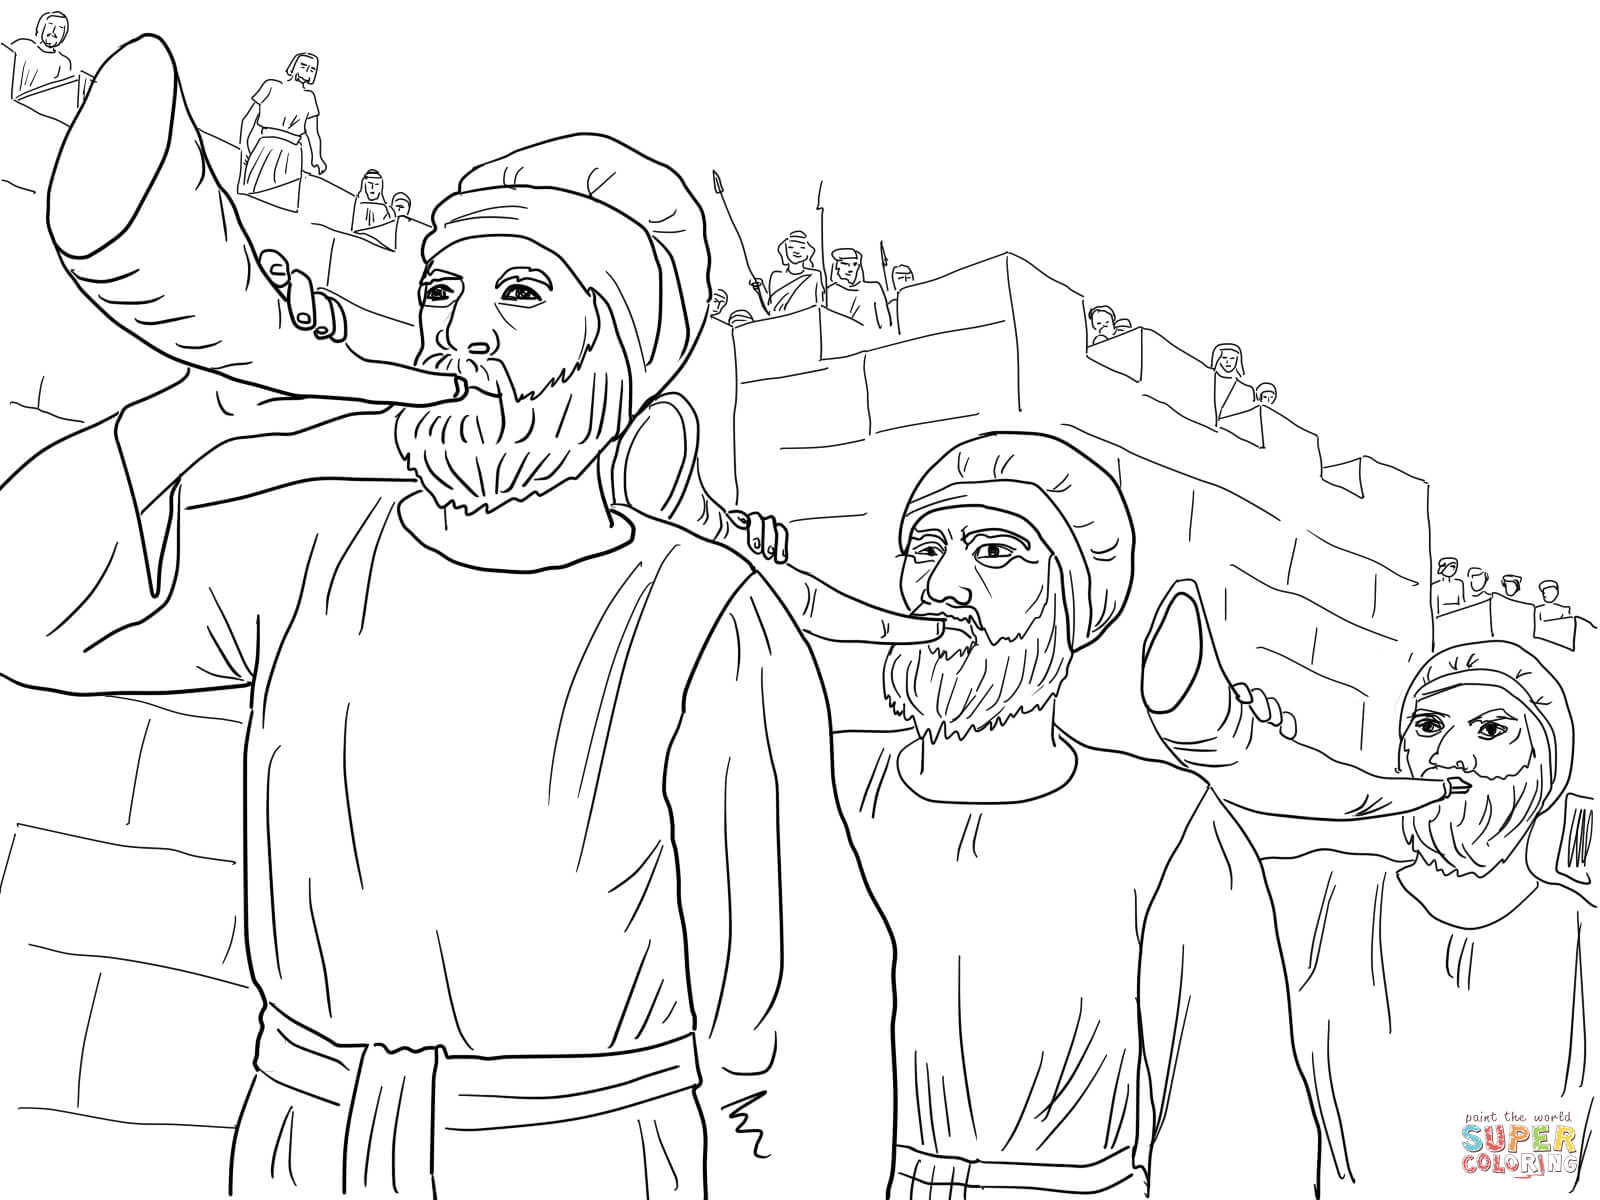 battle of jericho coloring pages for kids and for adults